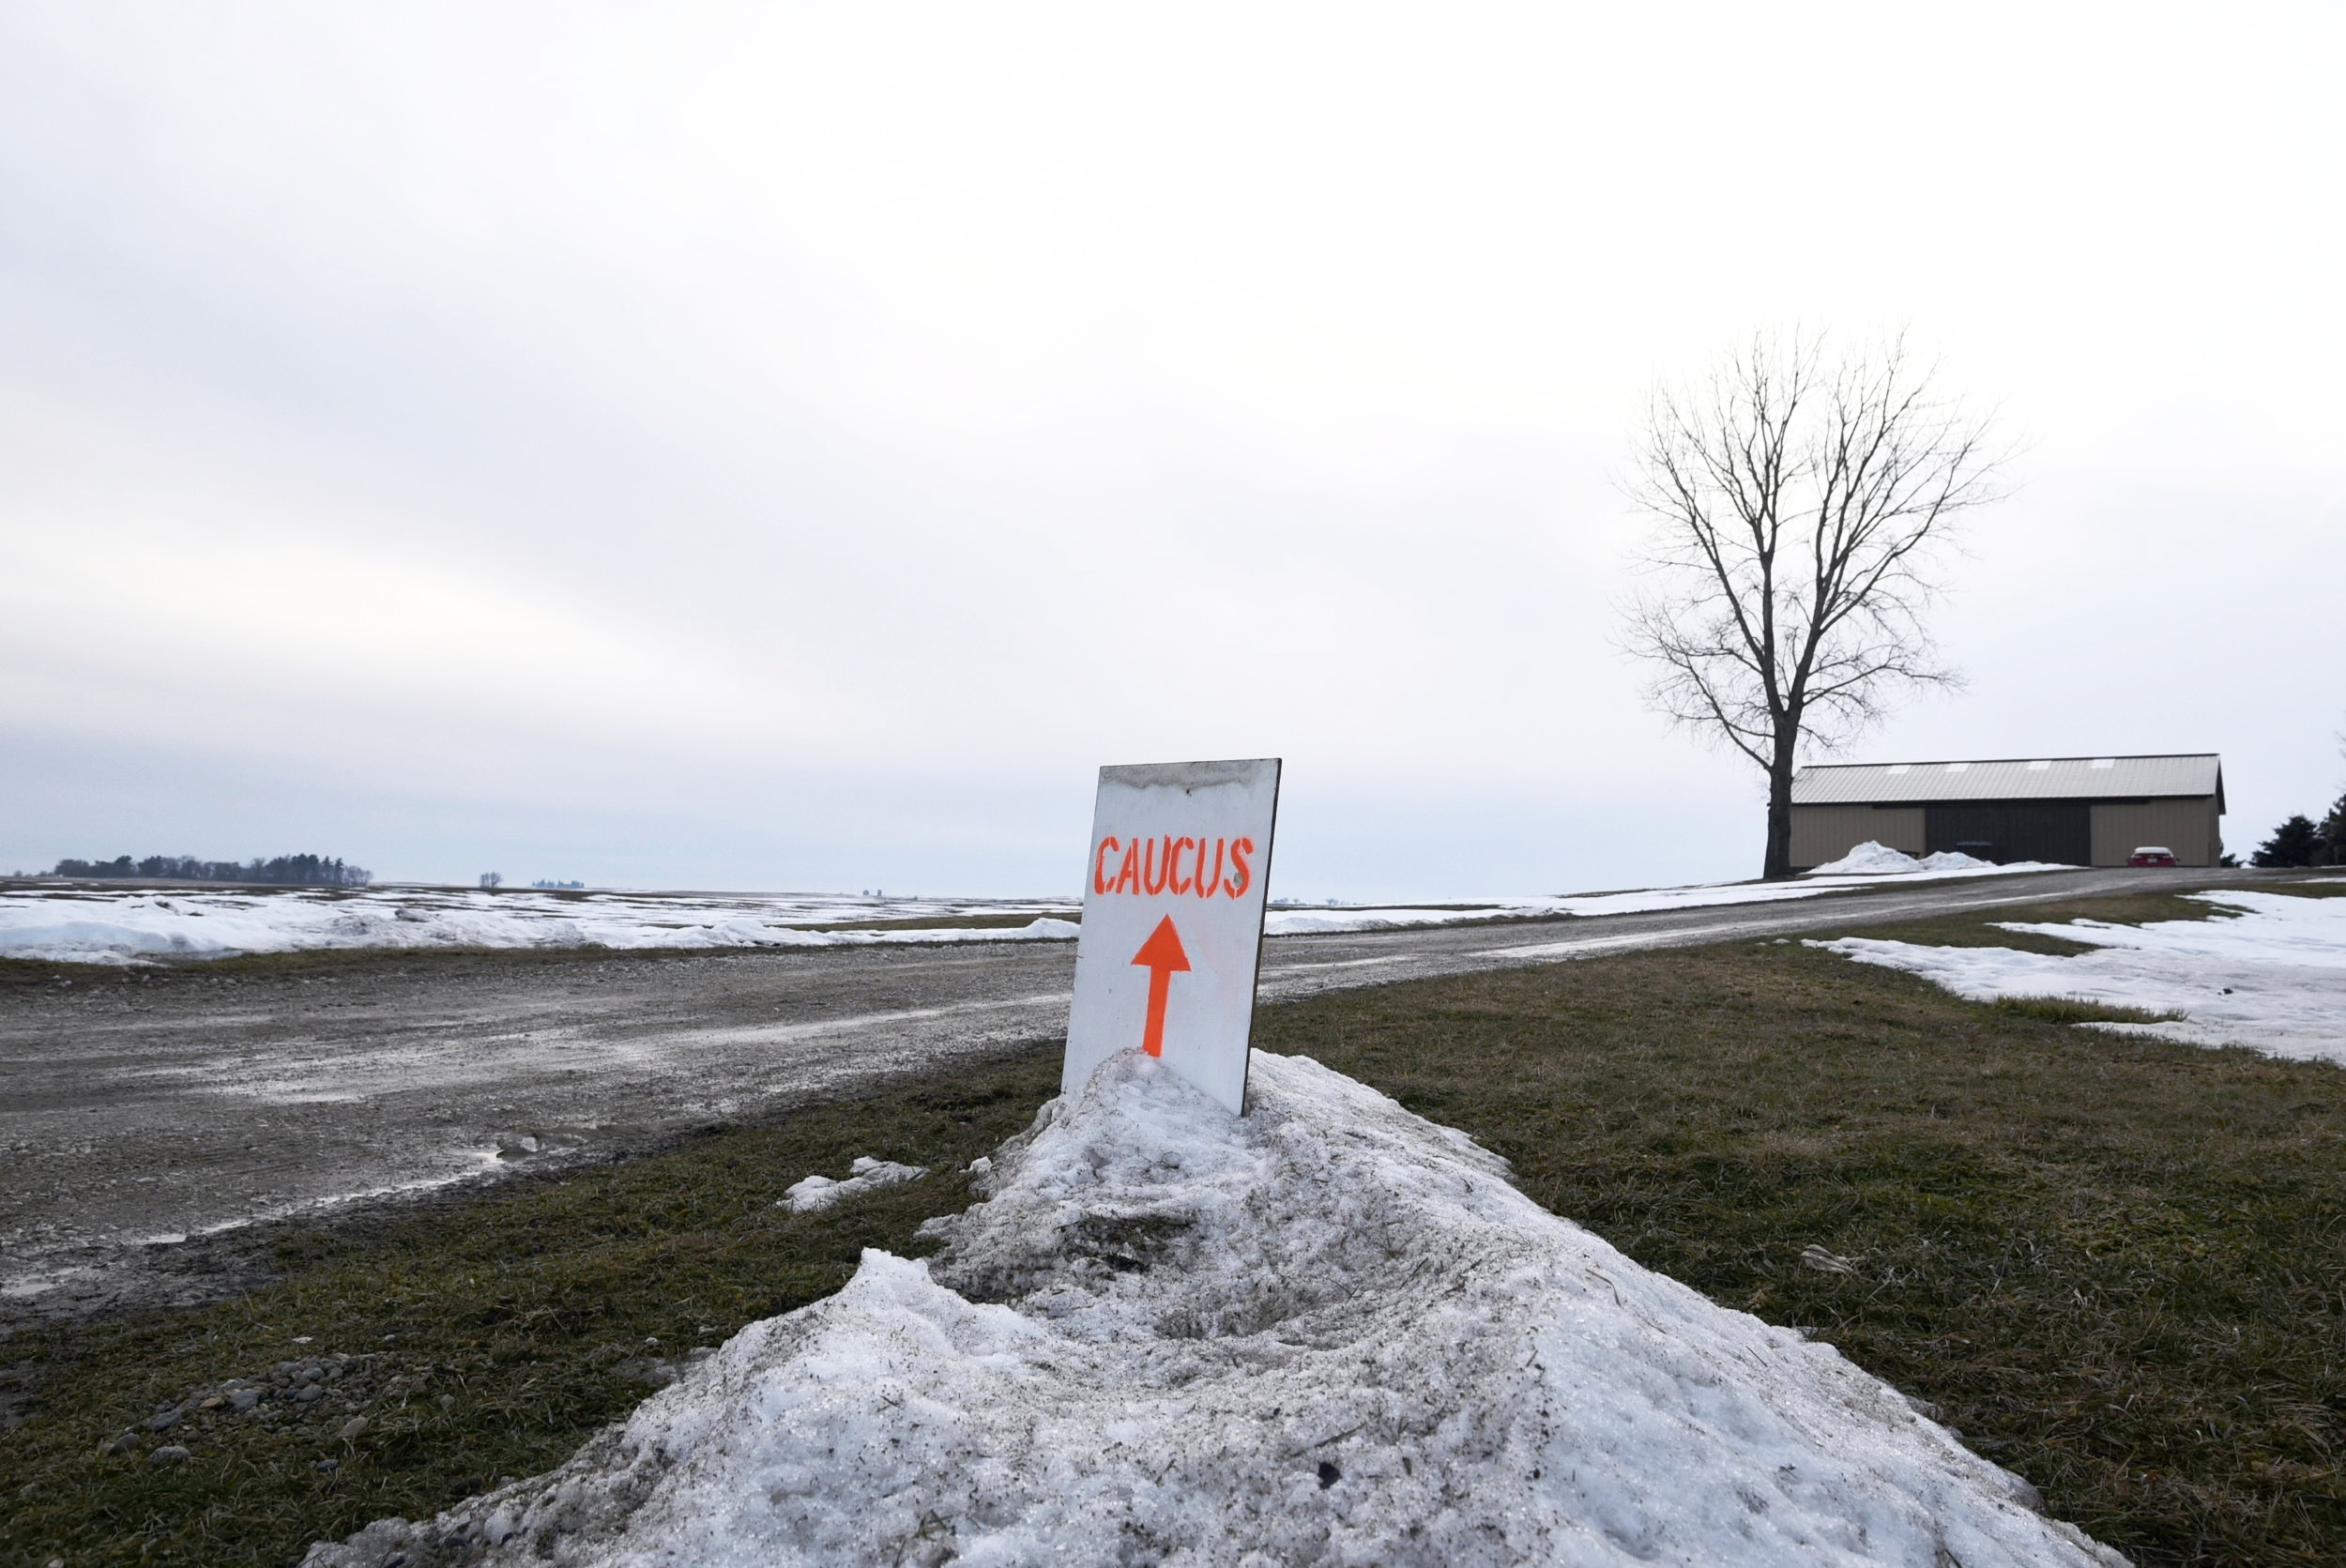 A sign directs caucus goers to the home of Gary and Mary Weaver in Rippey, Iowa February 1, 2016. REUTERS/Nick Oxford